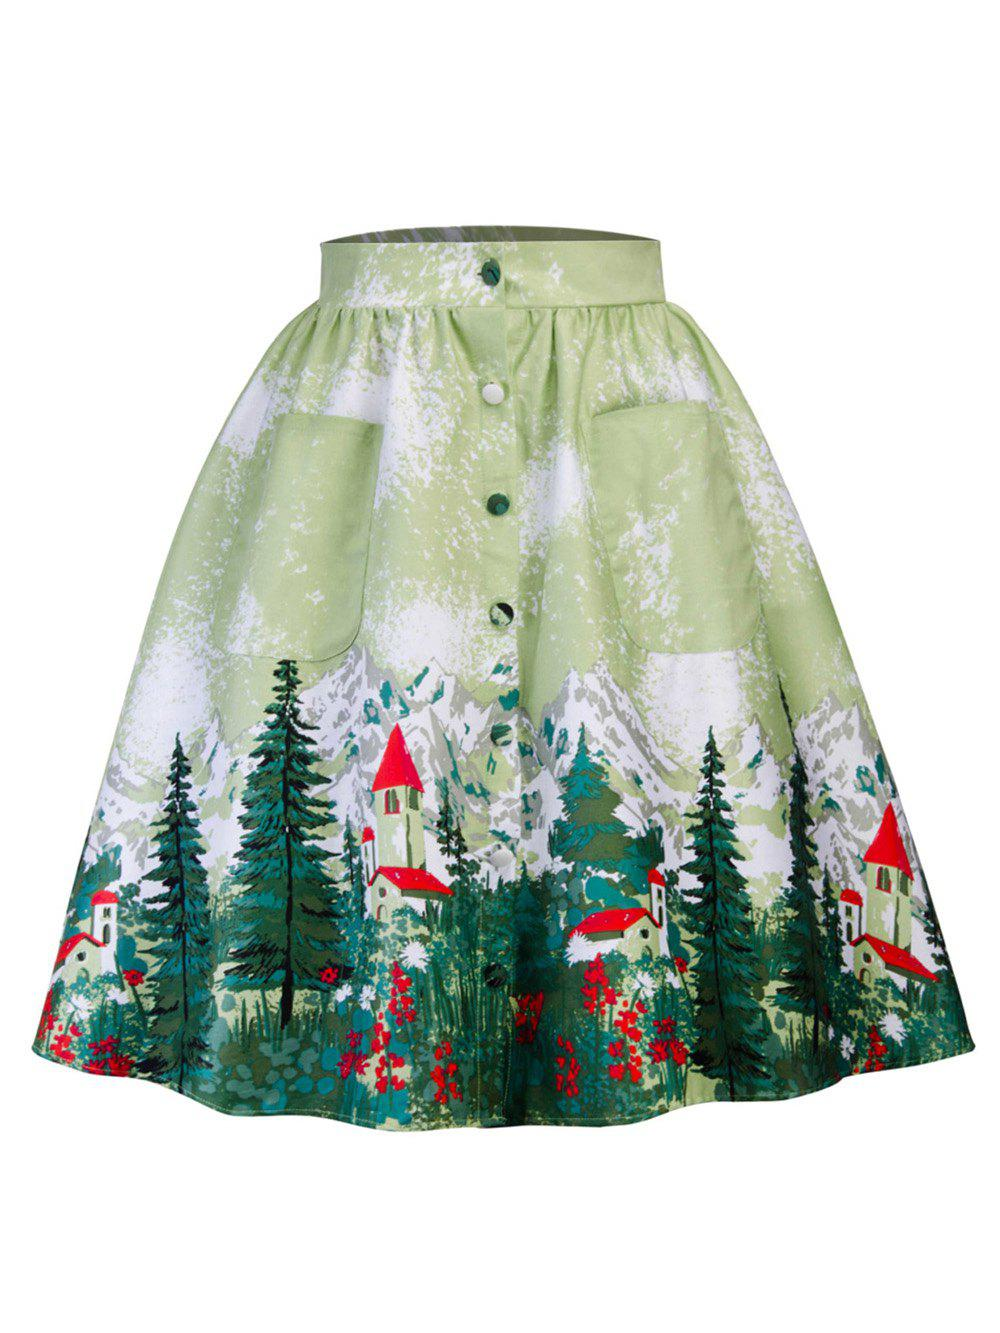 Outfits Hepburn Vintage Series Women Skirt Spring And Summer Trees Printing Button Fly Pocket Design Corset Retro Skirt